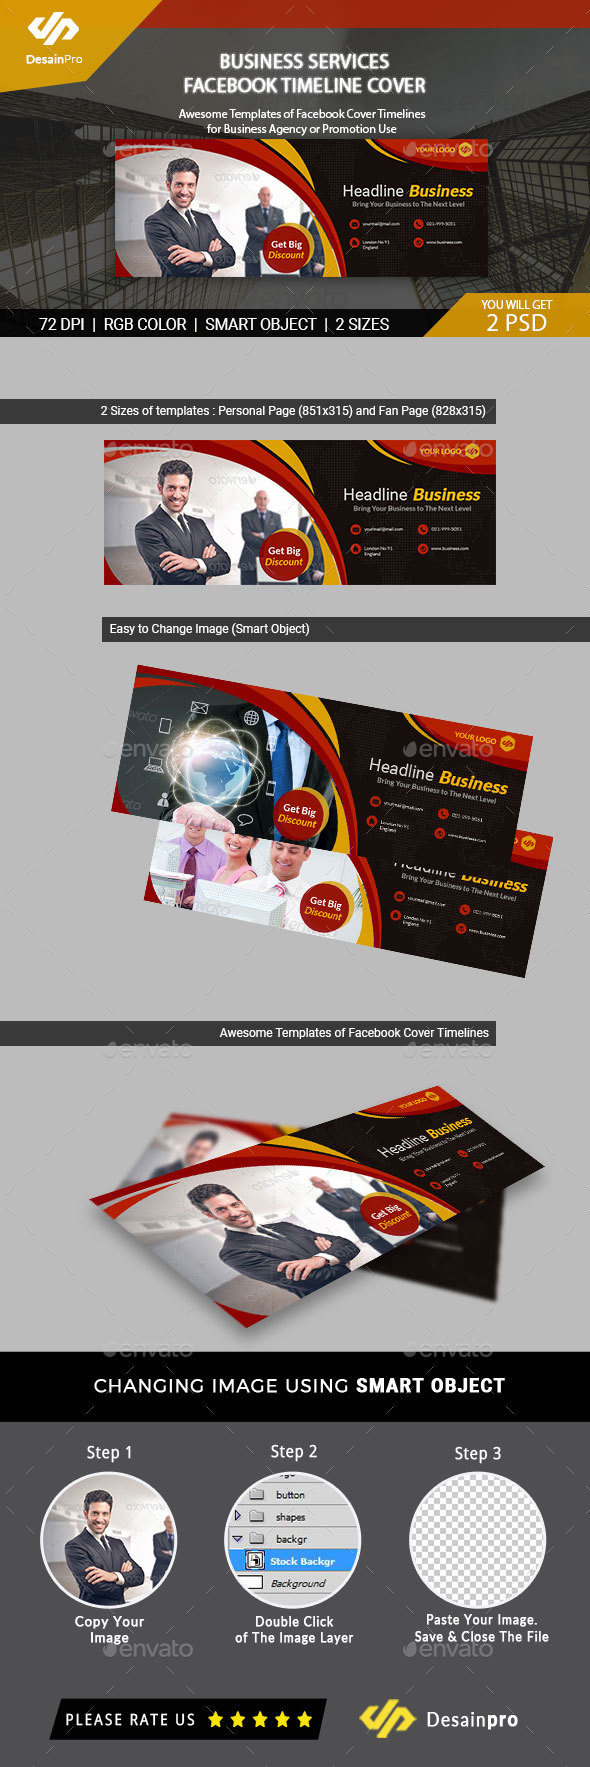 Business Solution FB Cover Template - AR - Facebook Timeline Covers Social Media